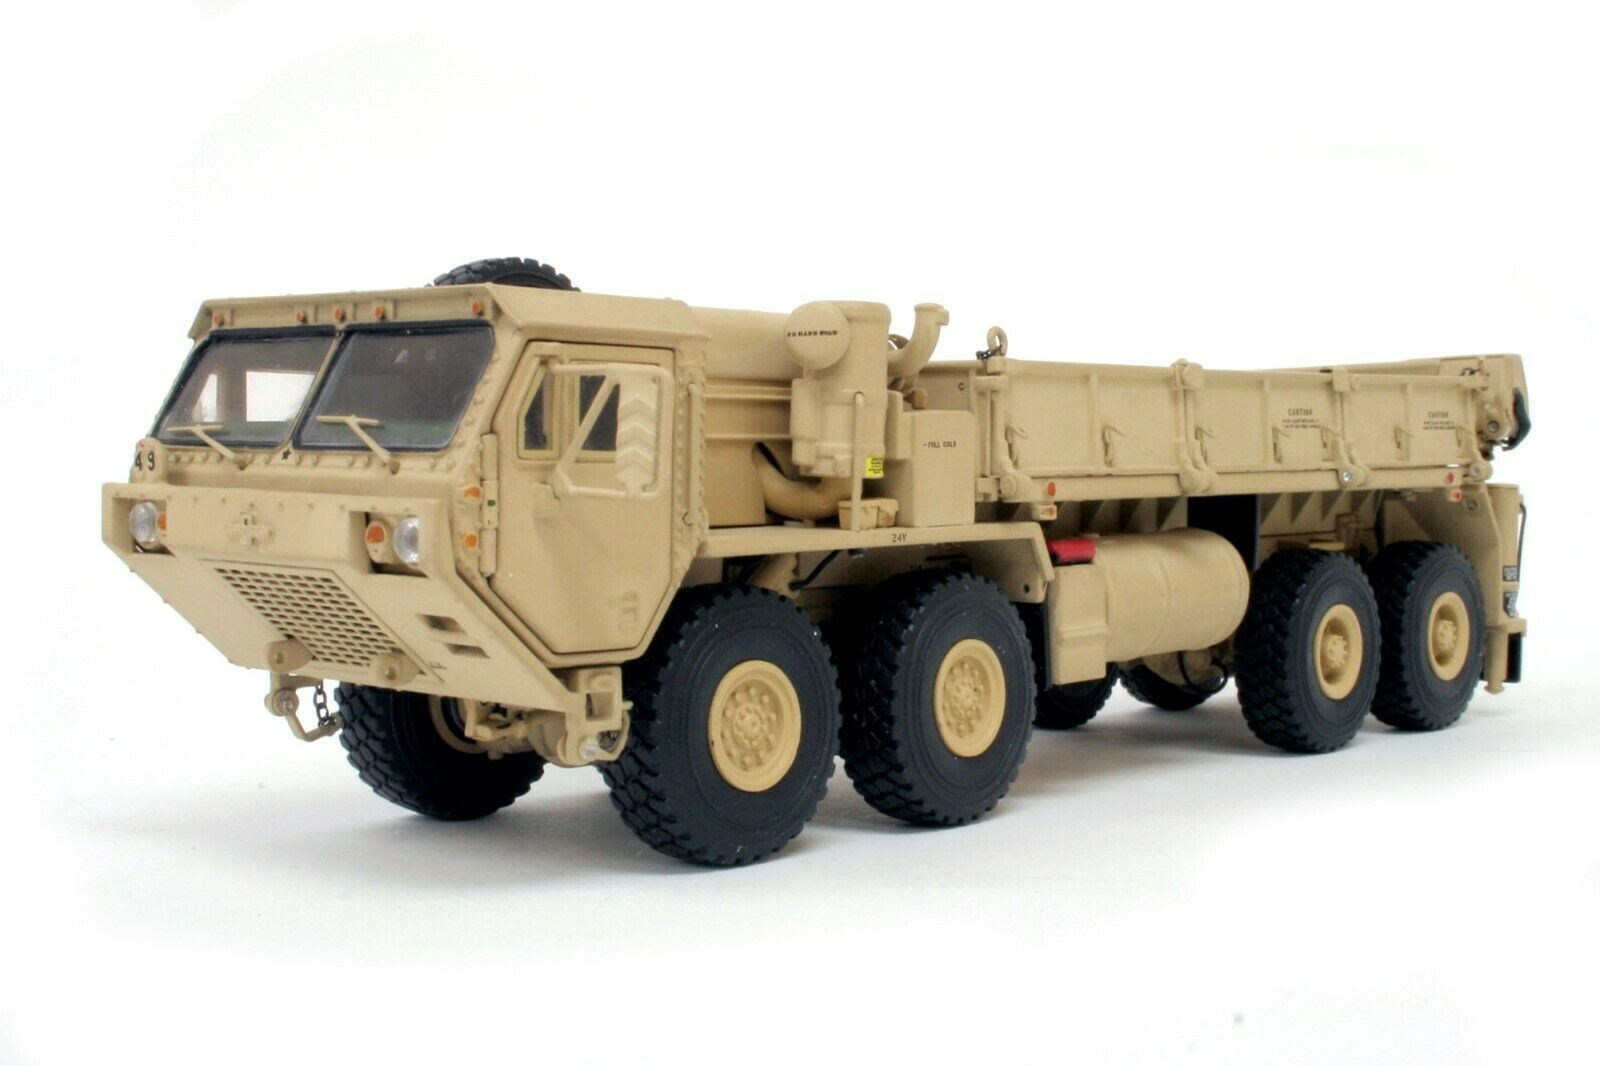 rc cars ebay australia with Oshkosh Hemtt M985 Military Cargo Truck Tan 200488144636 on RC Motorhomes RC9M Iveco Daily 70c21 172001166638 also 2x Body Shells Ford Escort Mk1 Rc Car 172301408982 moreover Oshkosh Hemtt M985 Military Cargo Truck Tan 200488144636 as well P 004W006040280003P additionally 222504066159.